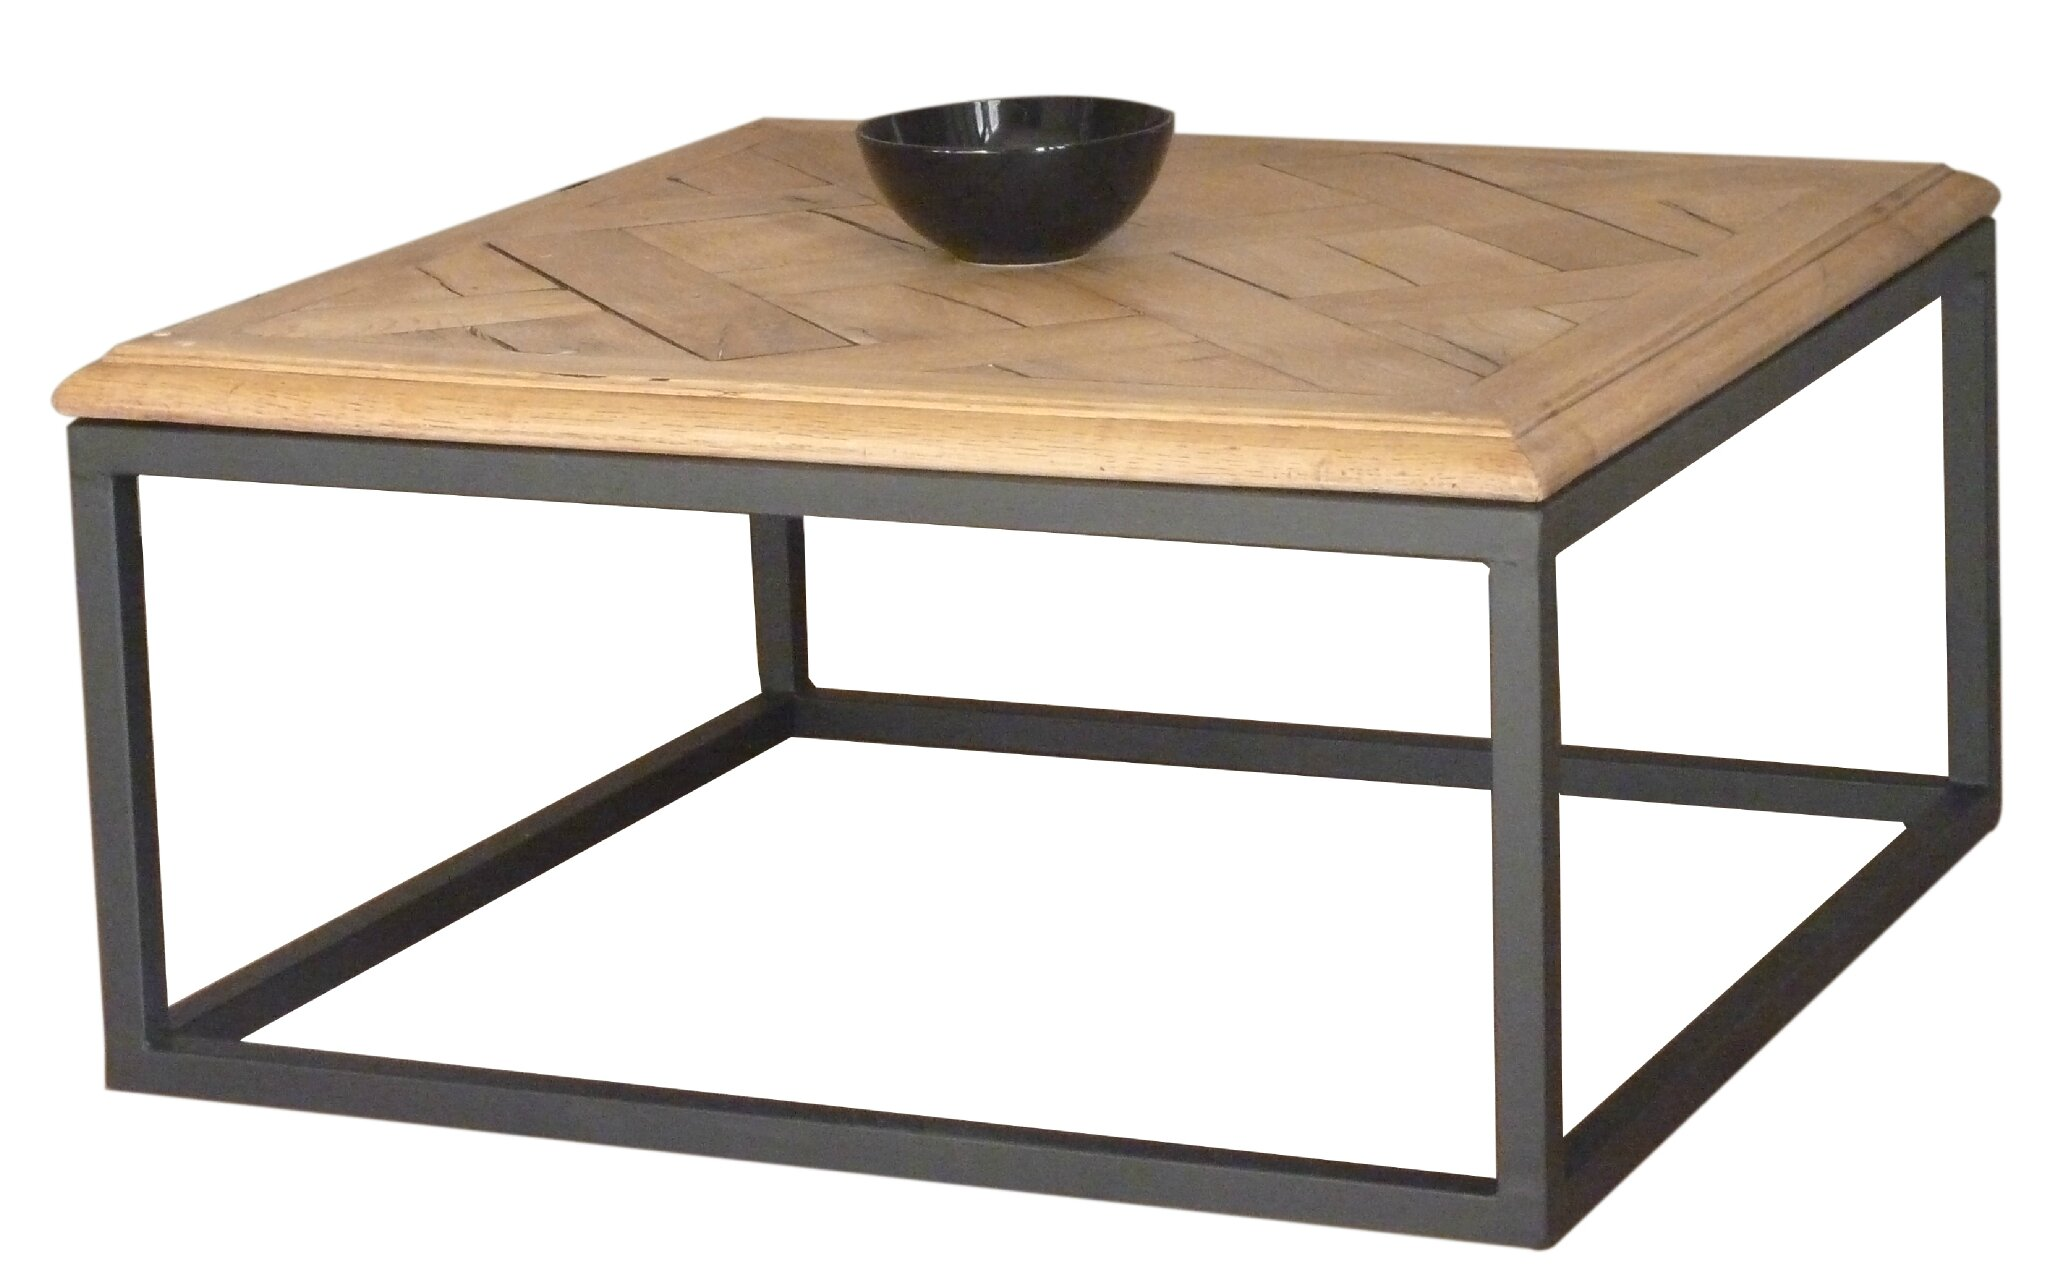 Deco Industrielle Pas Cher Ma Table Basse Industrielle Au 42 Home